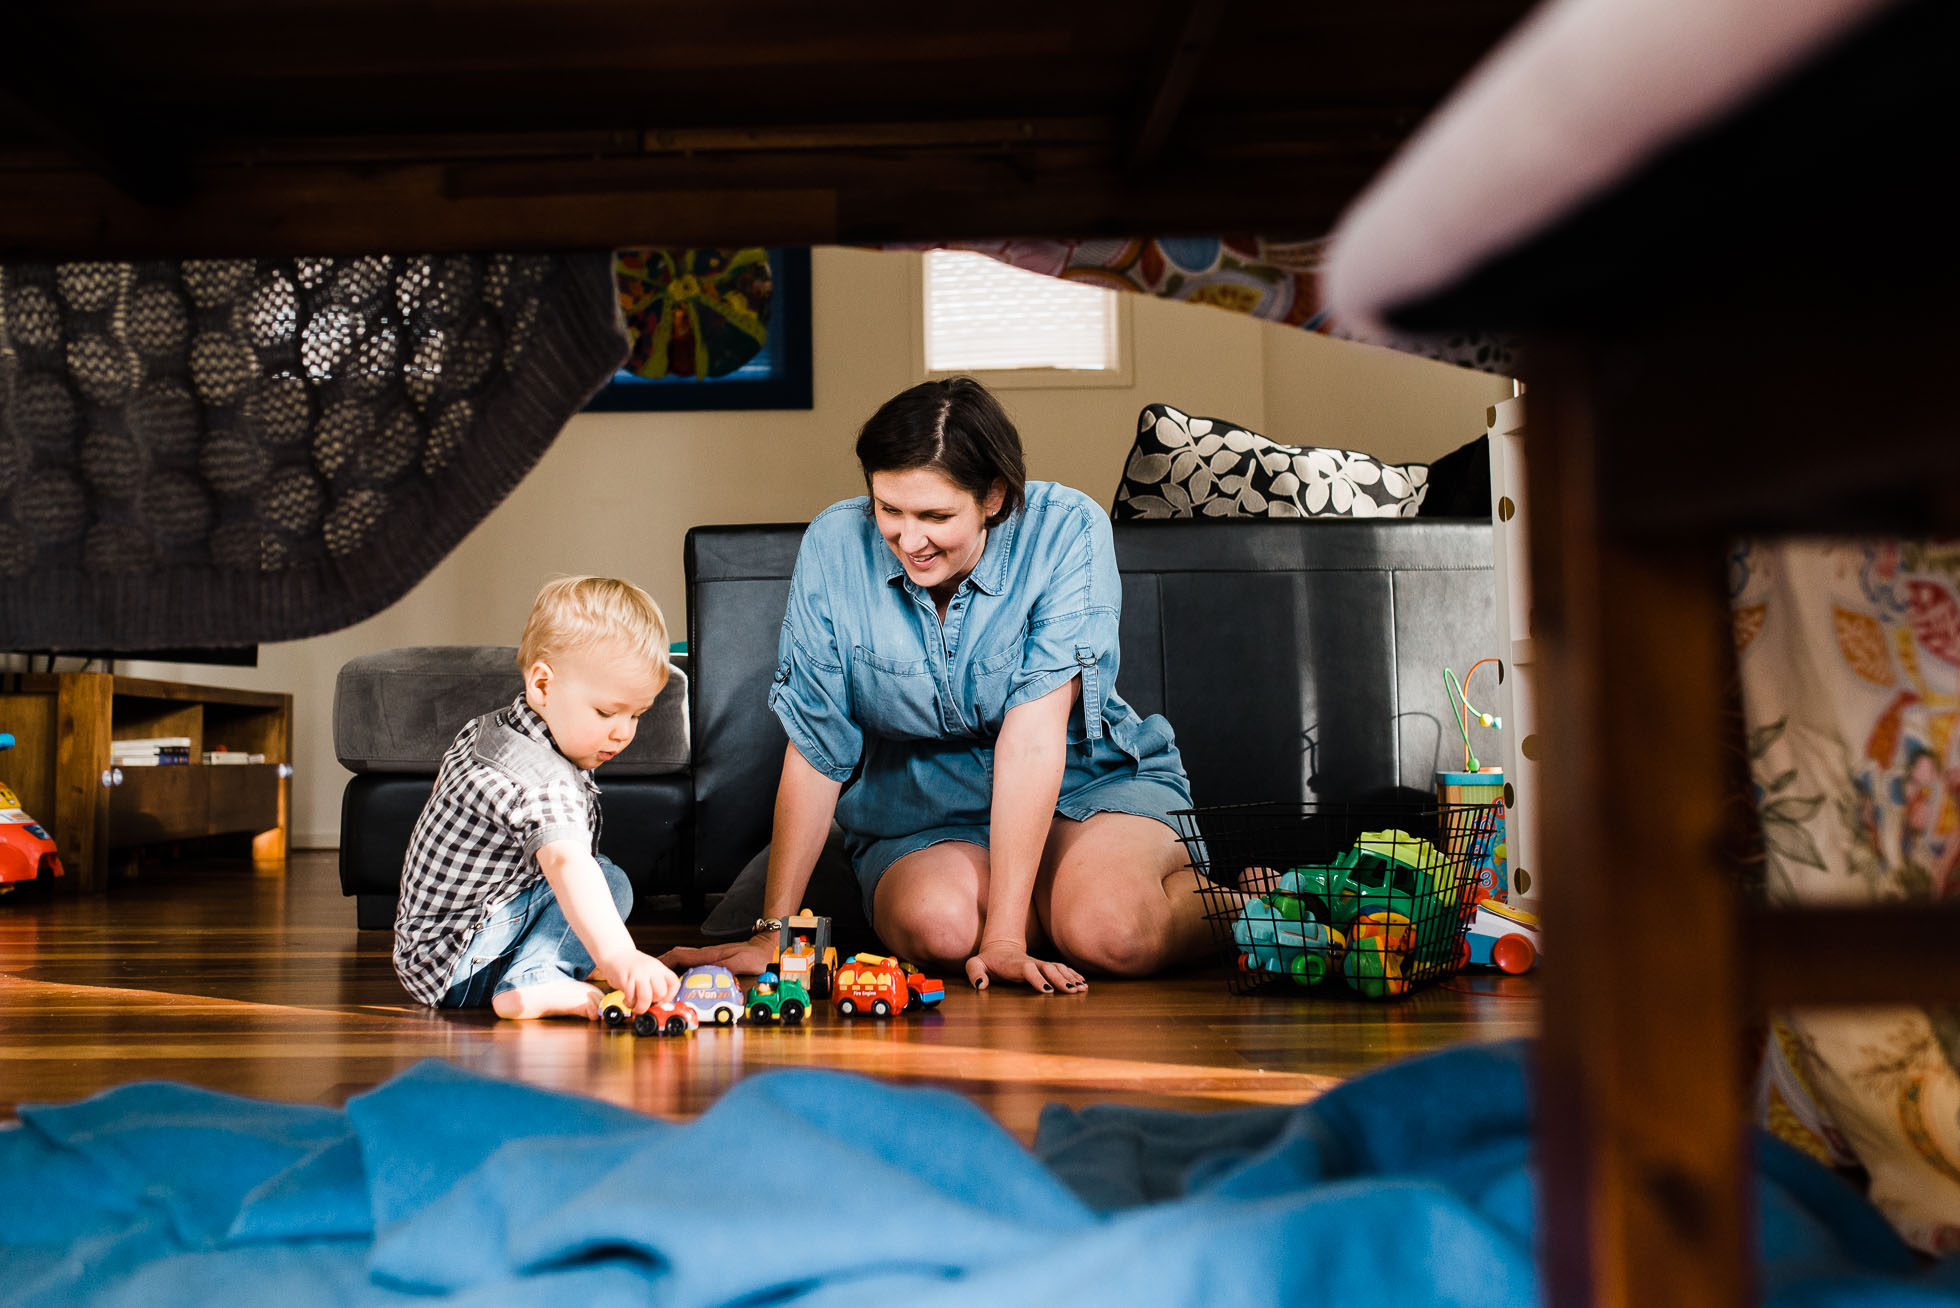 mum-playing-toys-with-little-boy-at-home-melbourne-family-photographer.jpg